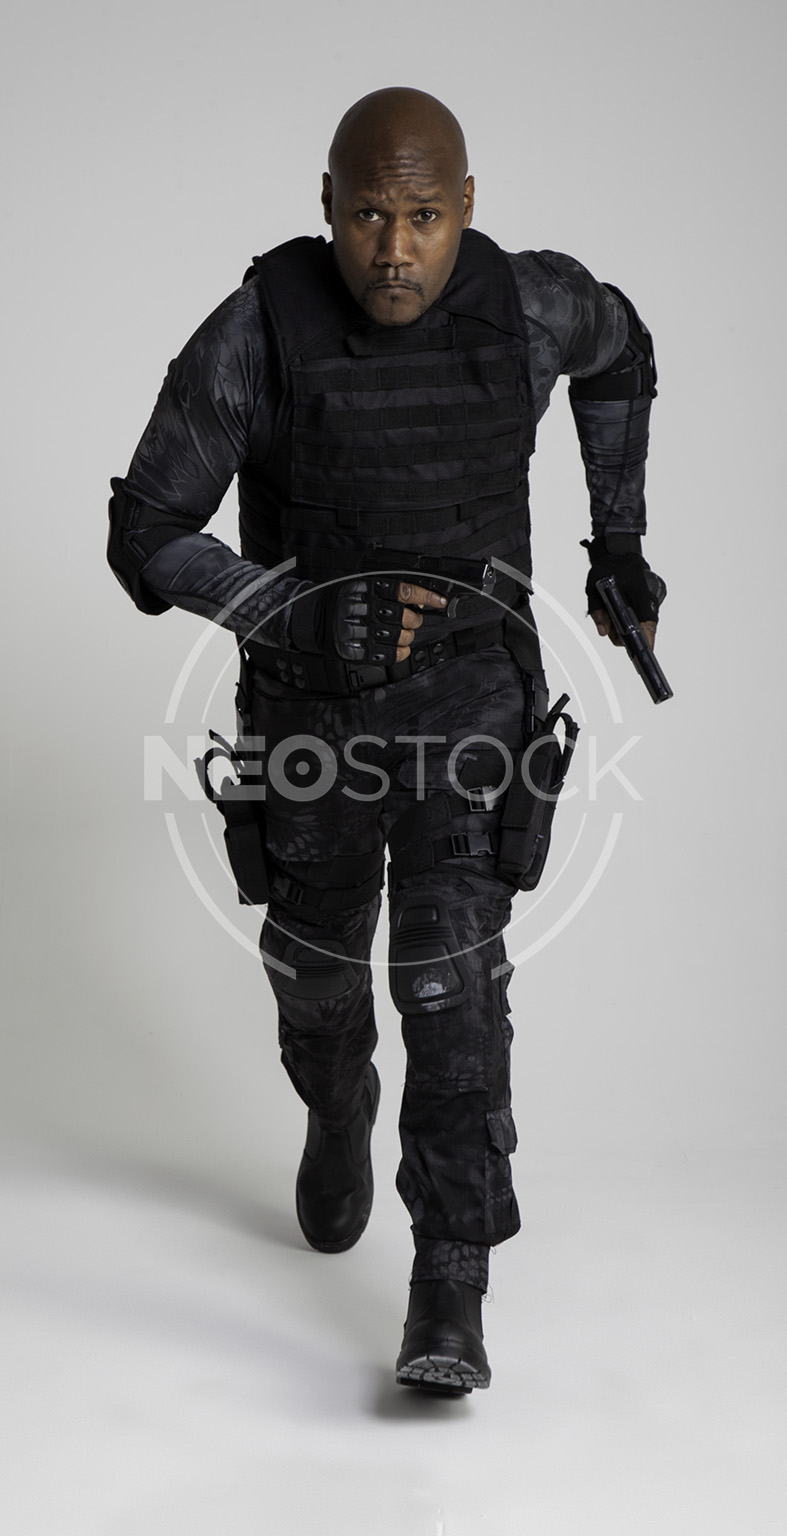 NeoStock -Regis IV, Tactical Assassin, Stock Photography